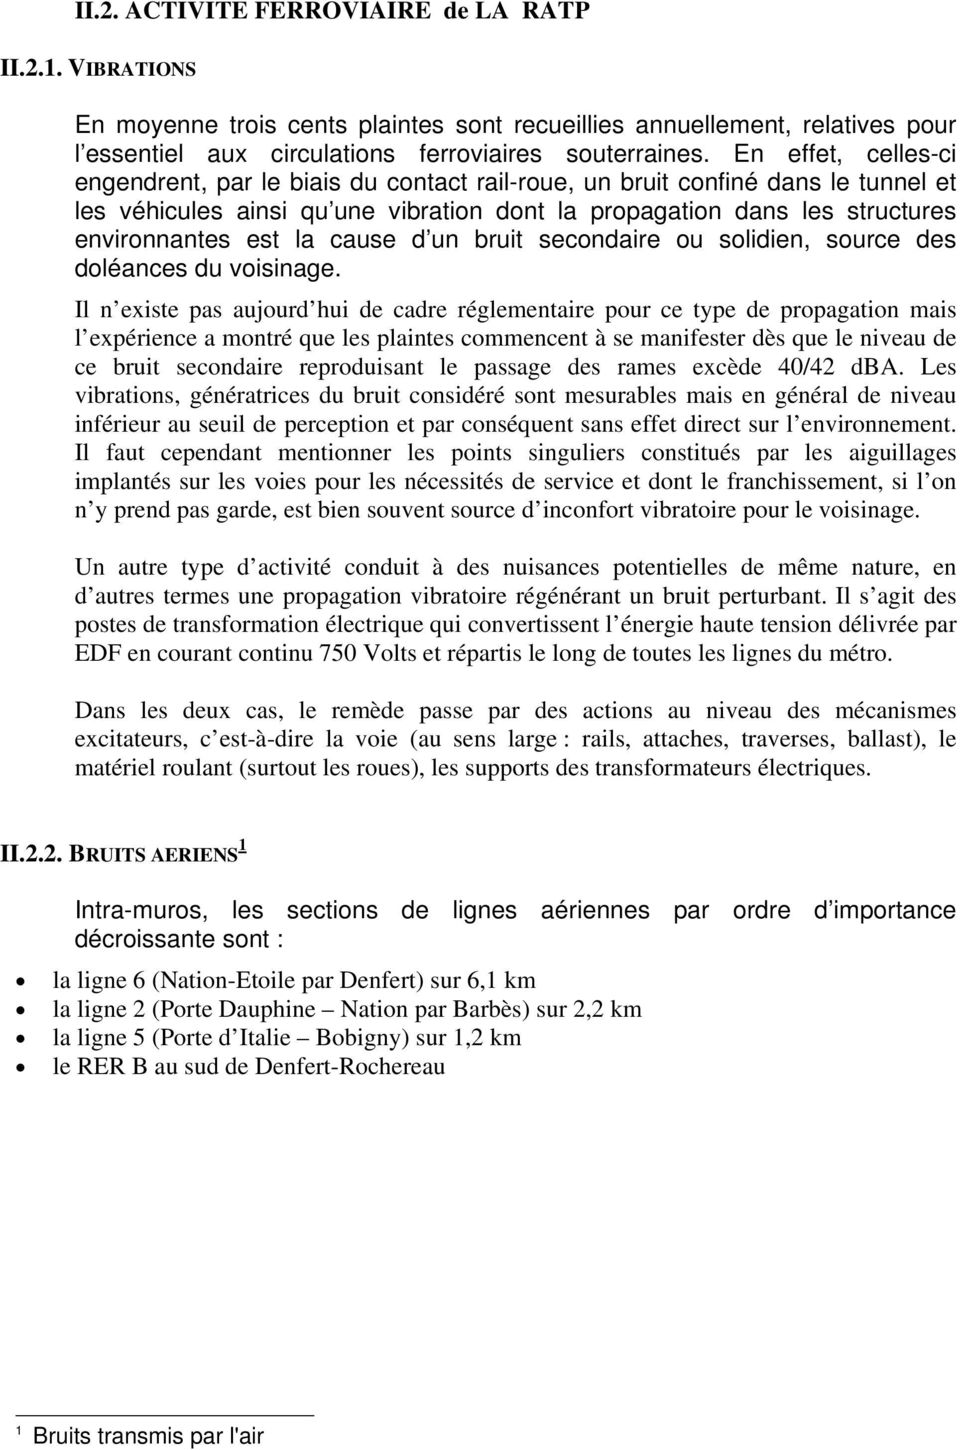 cause d un bruit secondaire ou solidien, source des doléances du voisinage.